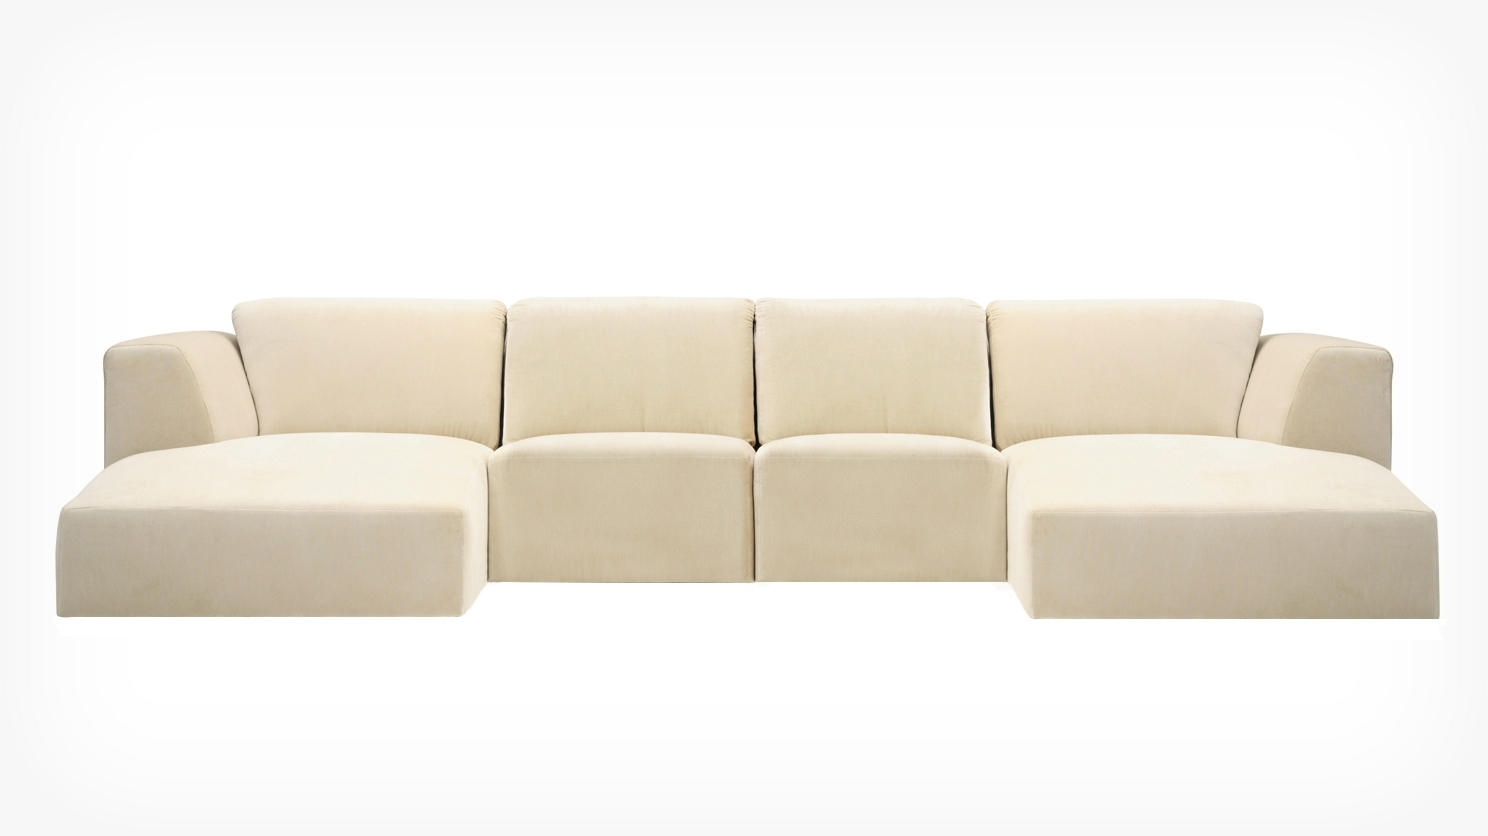 Morten 4 Piece Sectional Sofa With Chaise – Fabric (View 7 of 15)